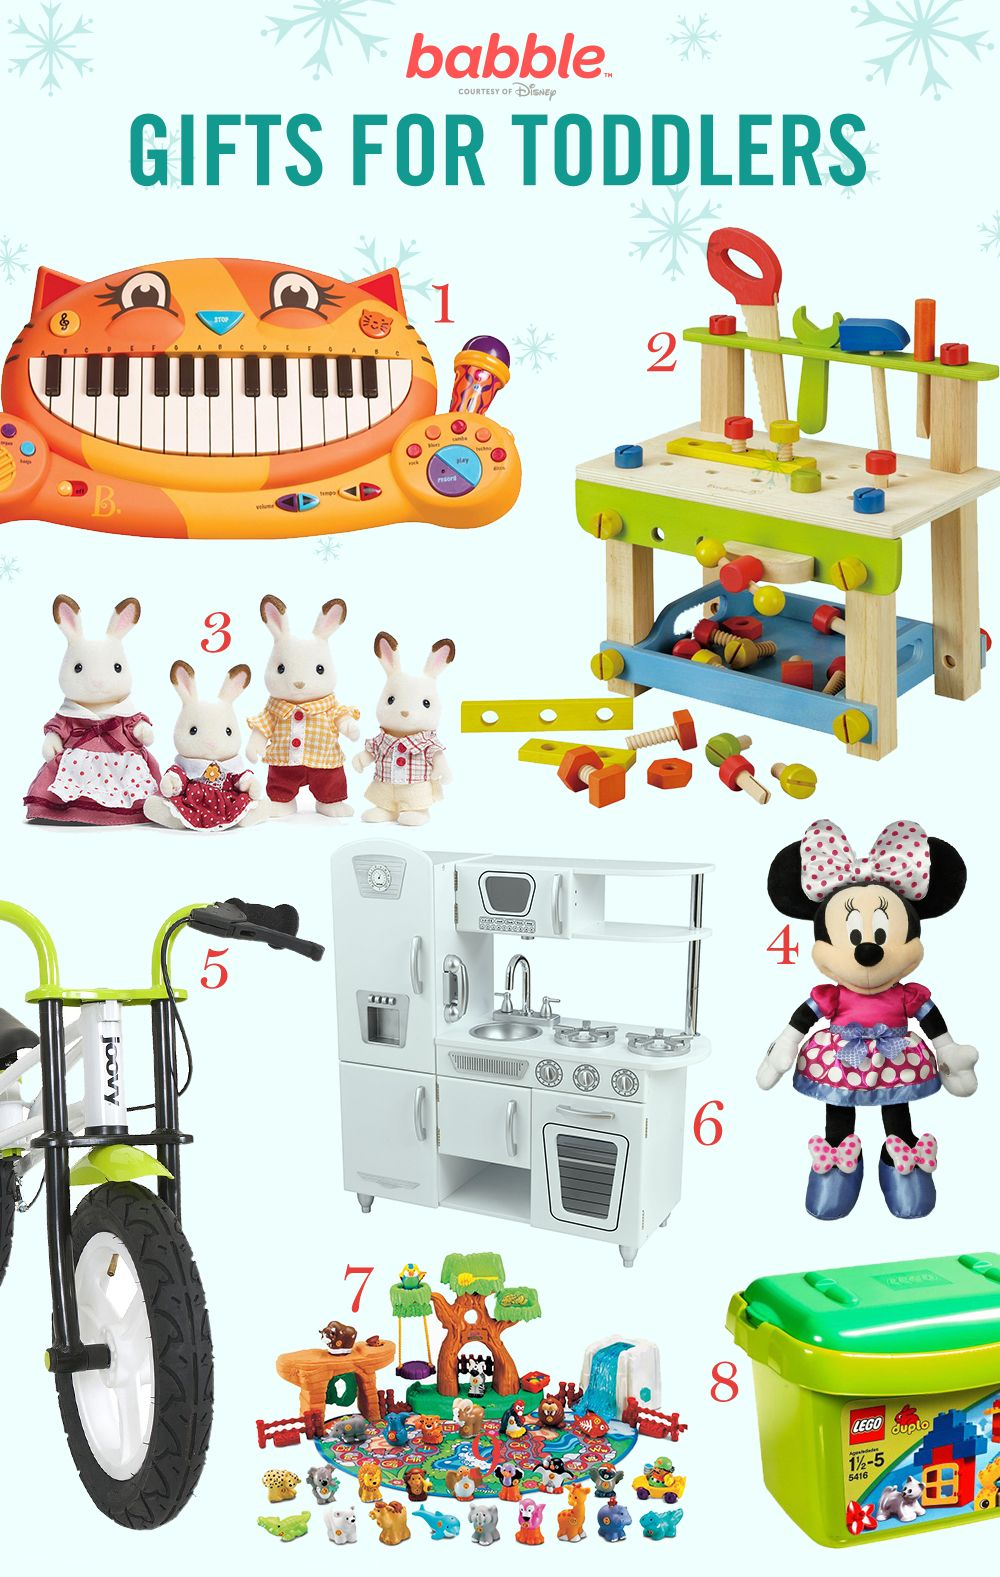 Toys for kids 8 and up   Gifts That Even the Pickiest Toddlers Will Love  Holidays Gift